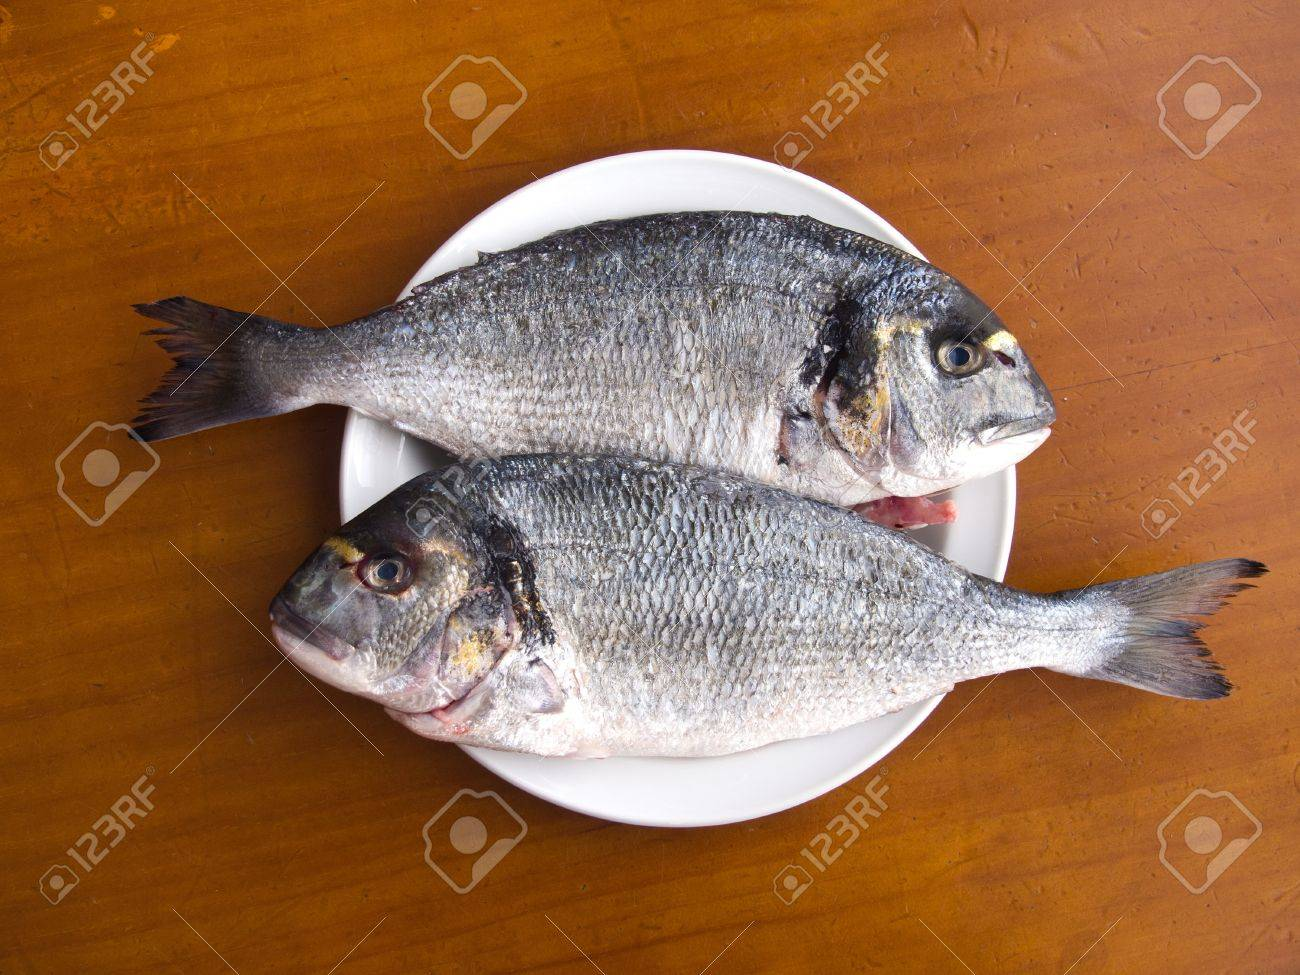 Two scaled gilt-head bream fishes on the white plate, ready for cooking Stock Photo - 9688245